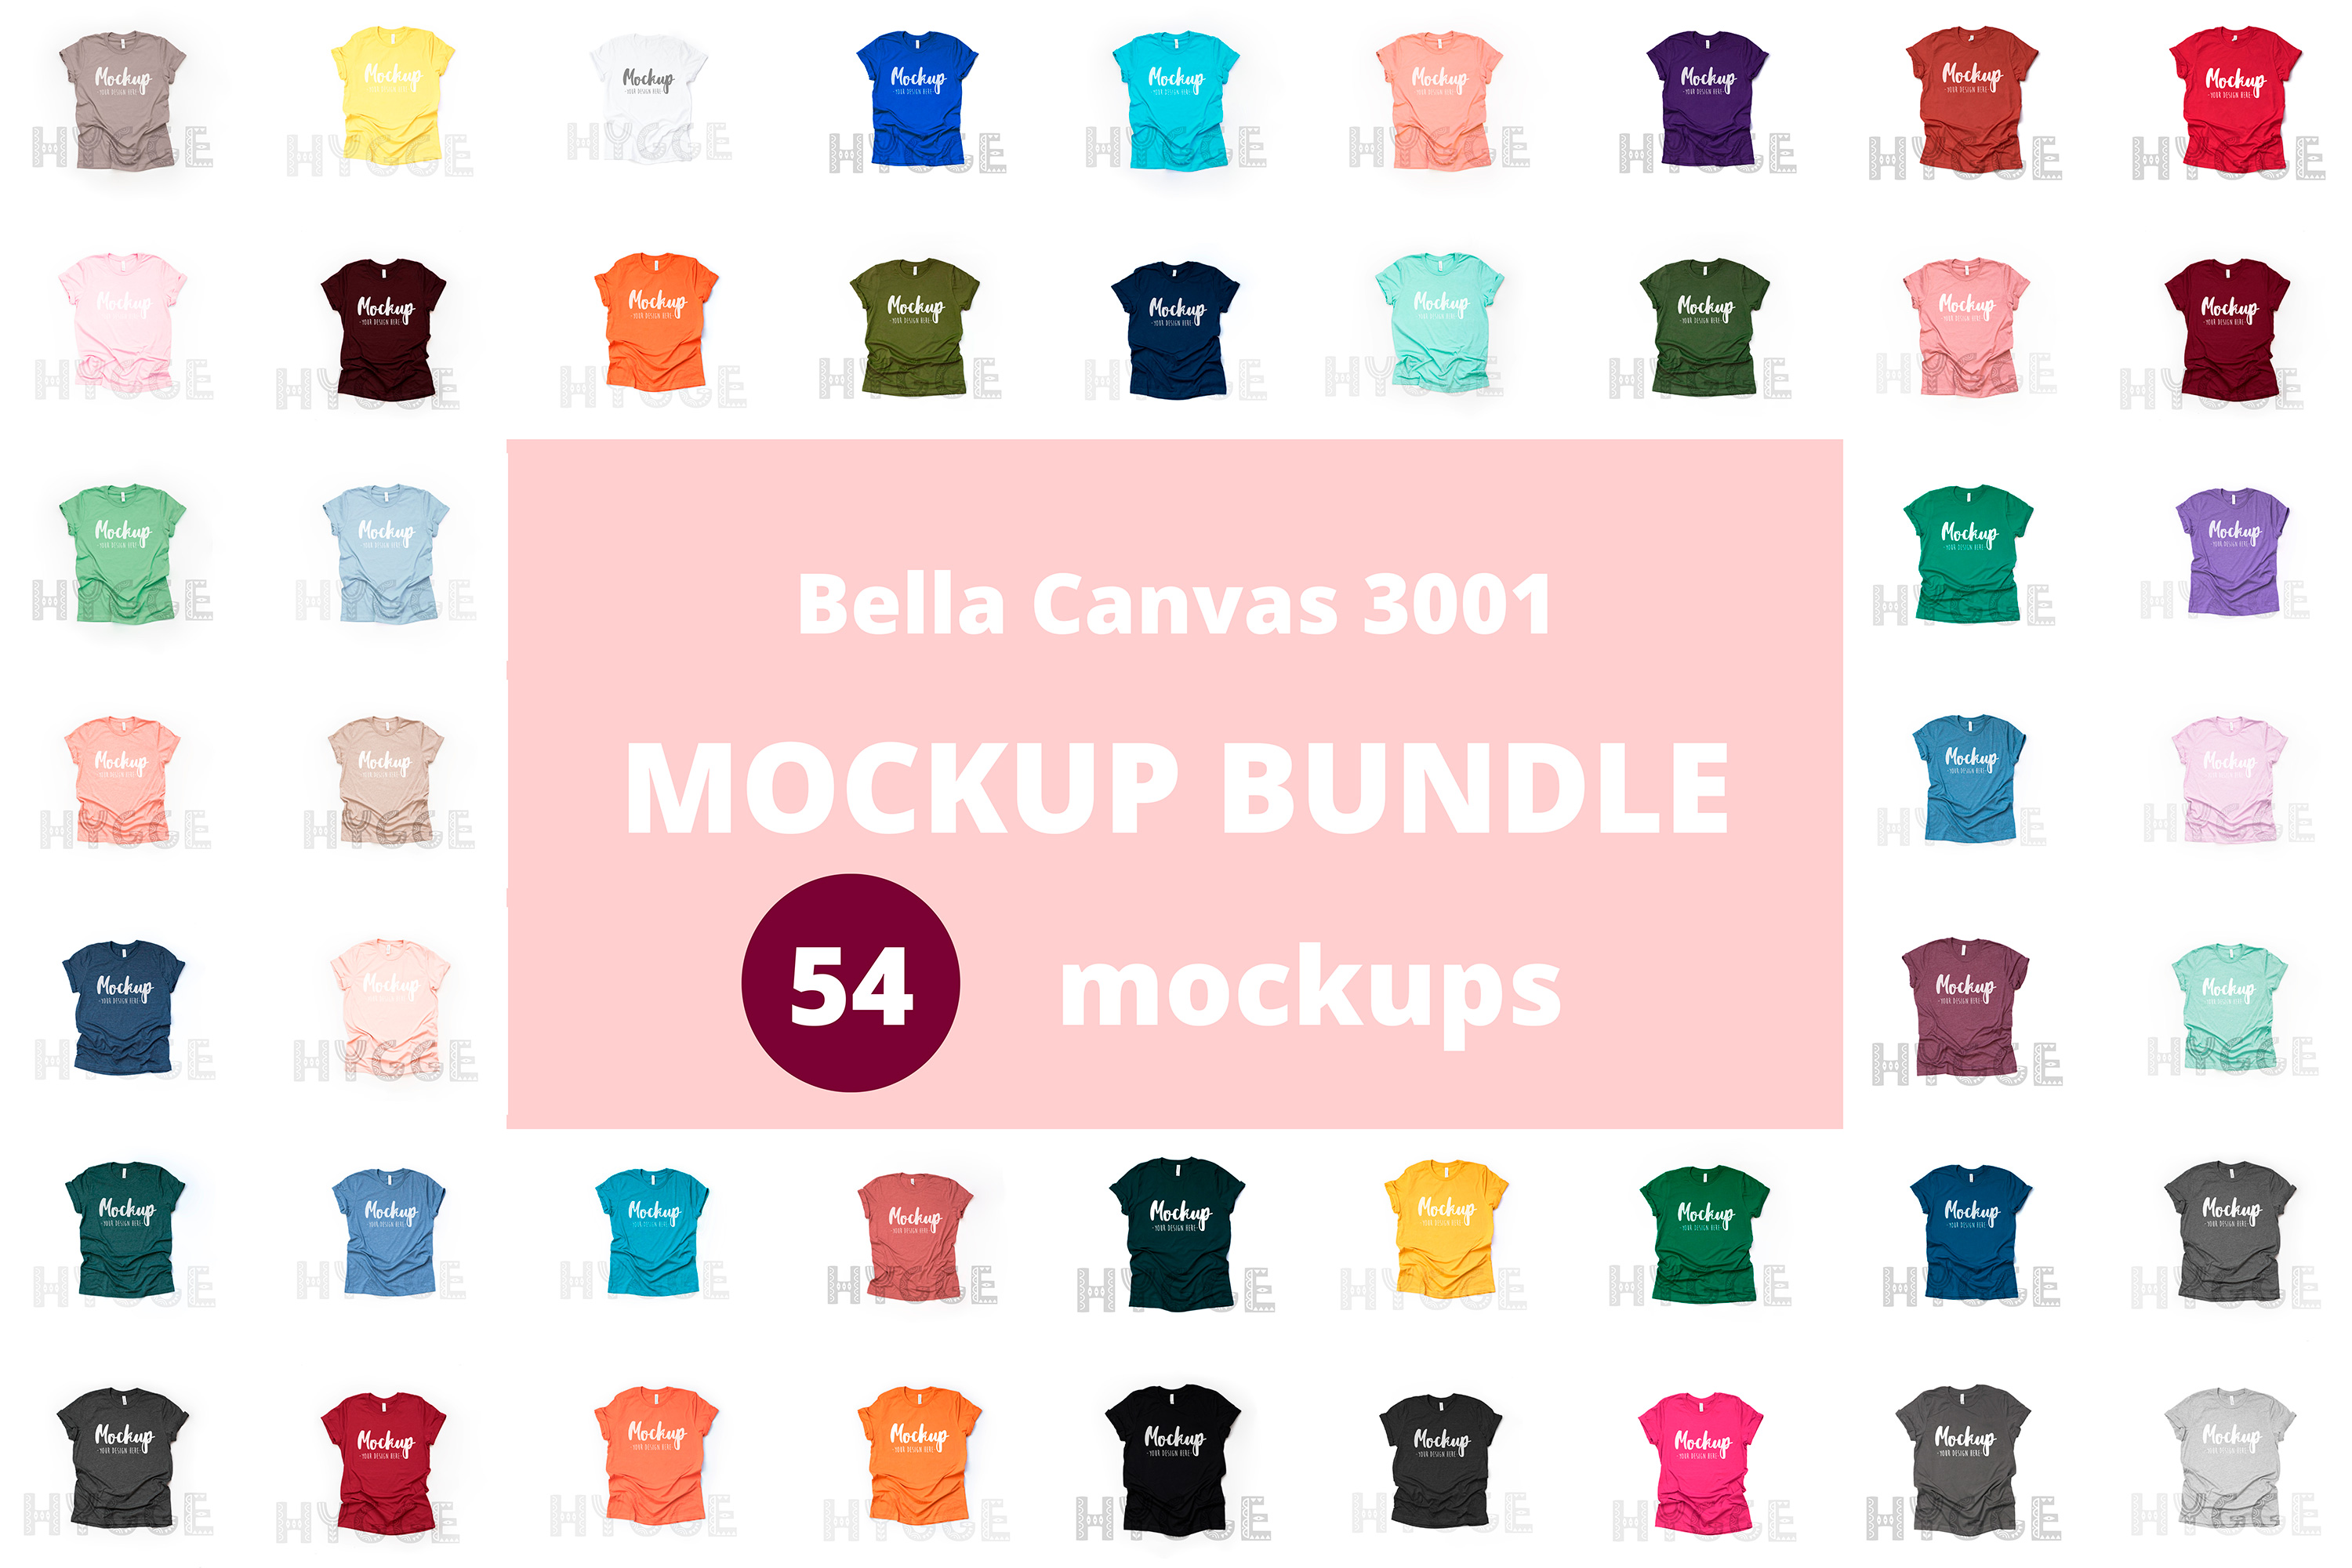 Tshirt Mockup Bundle Bella Canvas 3001 Basic tshirt mockups example image 1